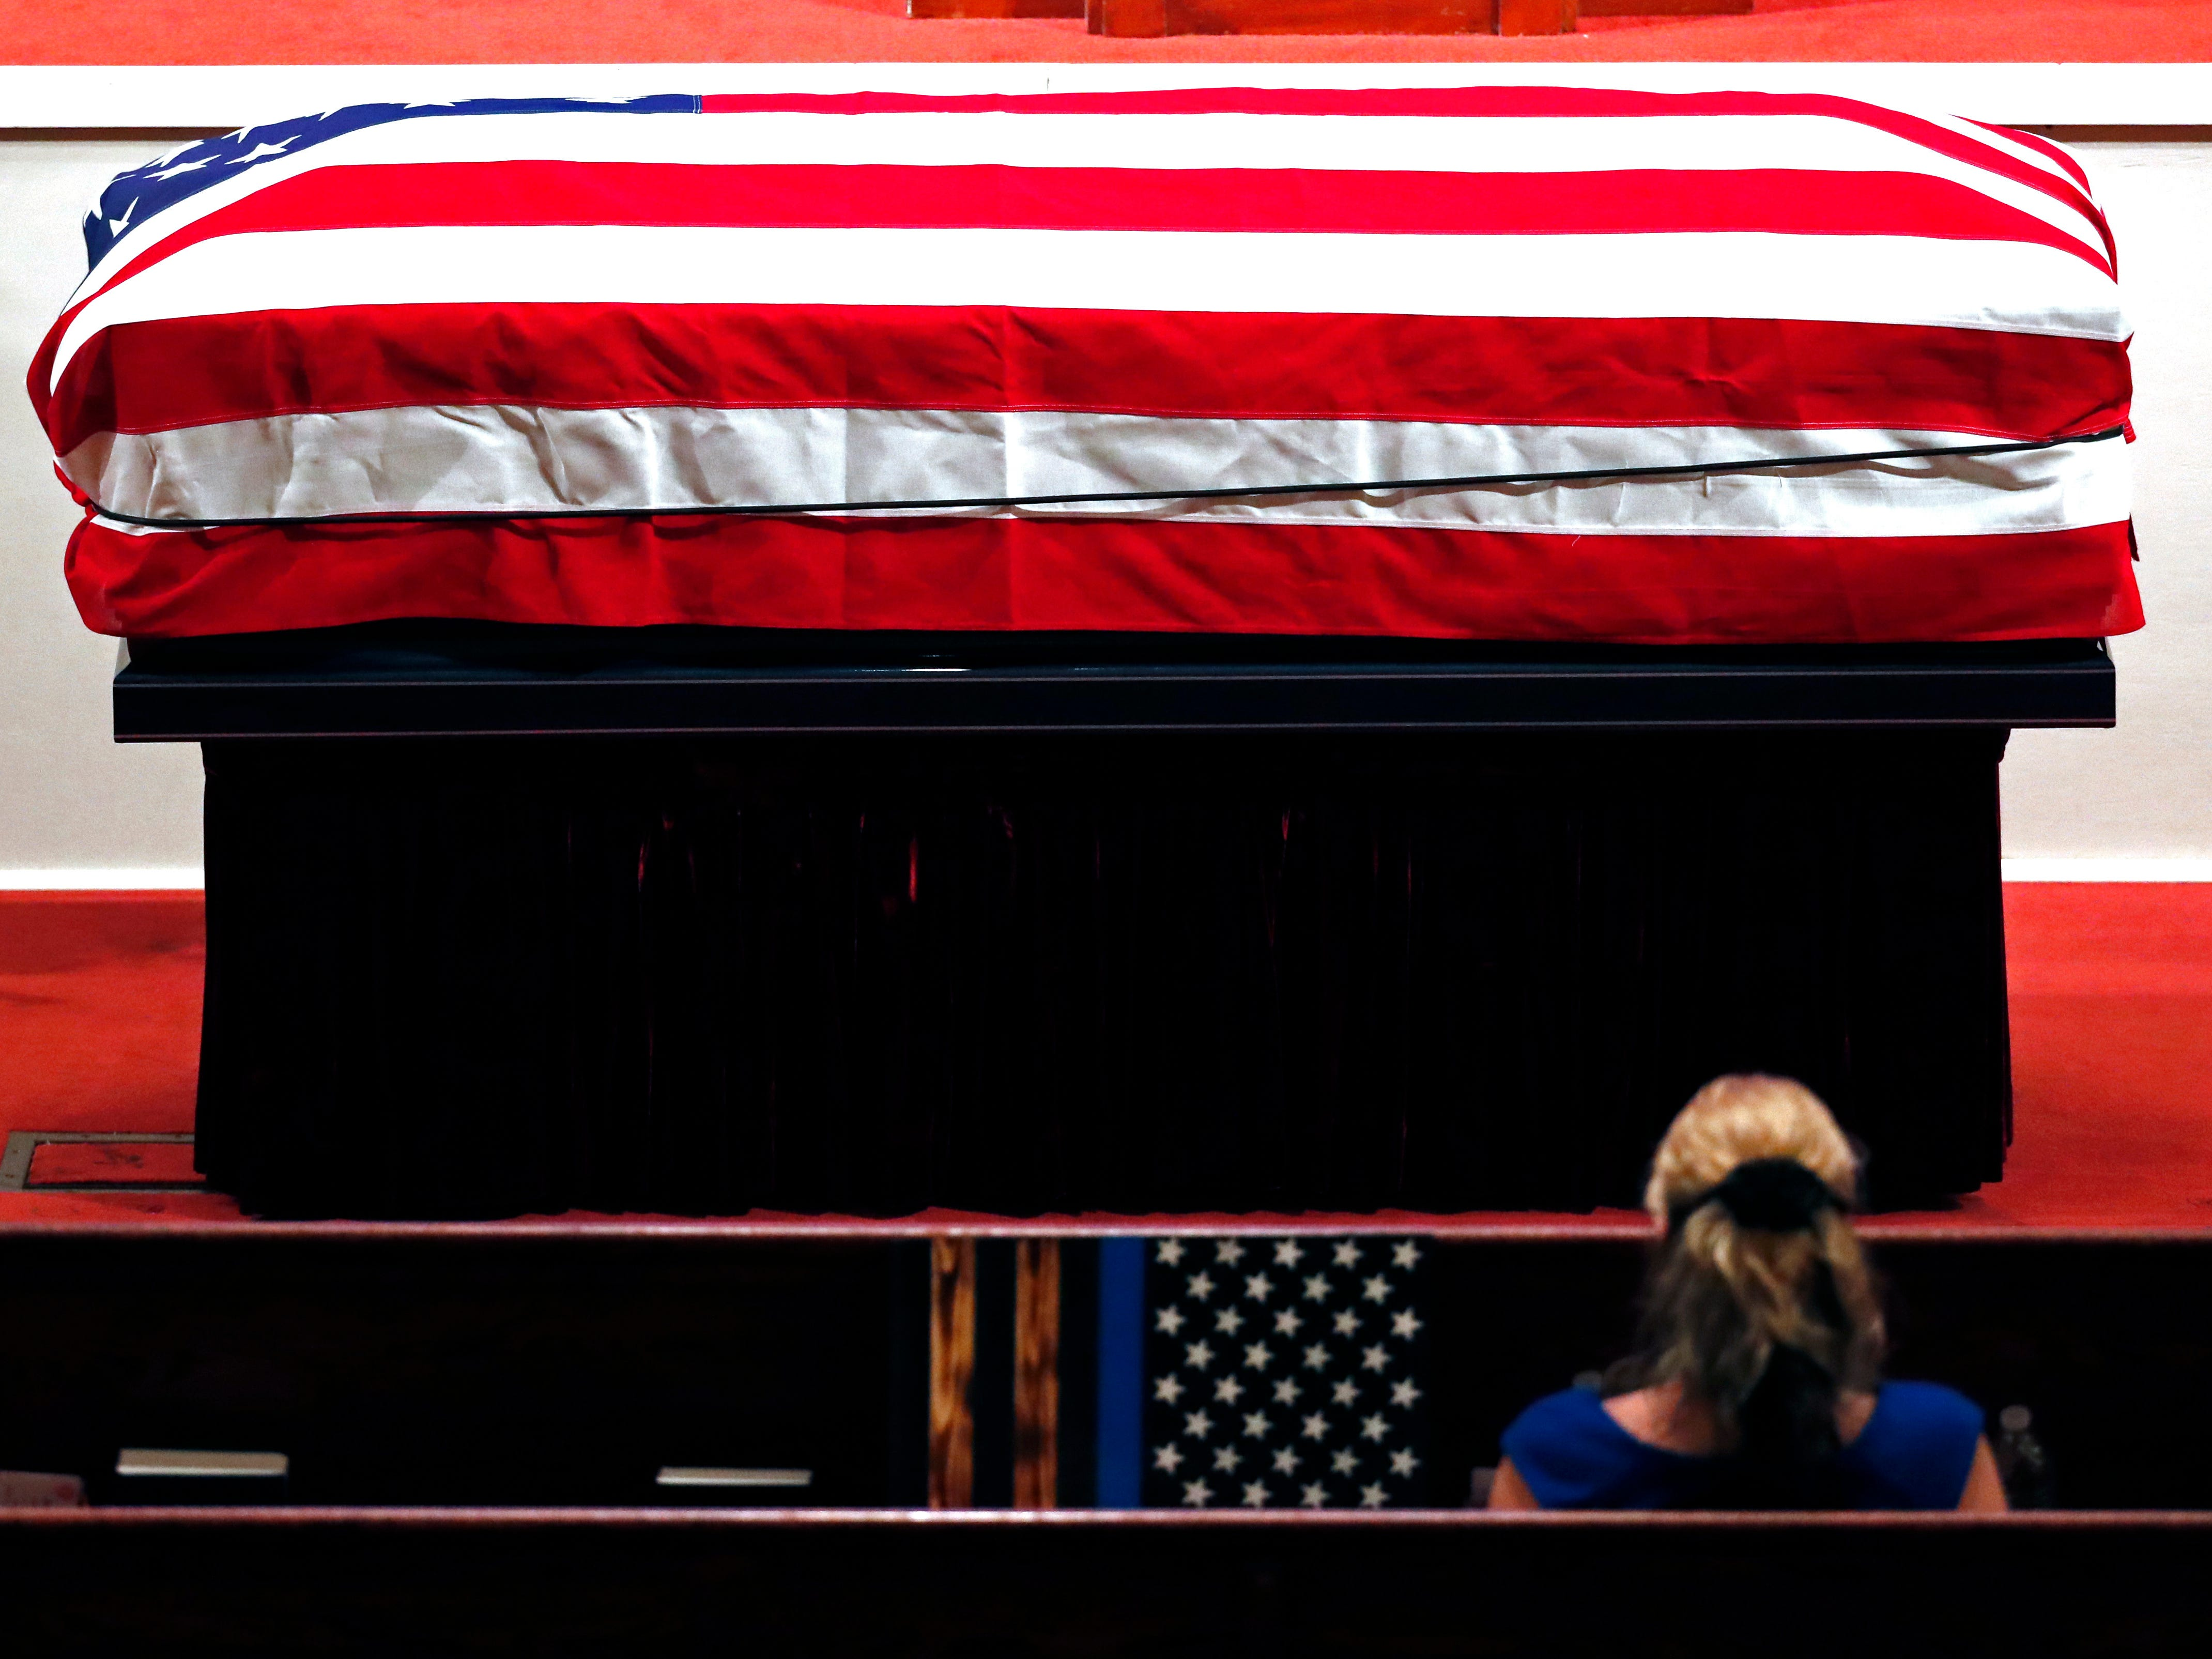 A friend of the family sits across the casket of Biloxi police officer Robert S. McKeithen, while waiting for the funeral service to start at the First Baptist Church of Biloxi, Miss., Monday, May 13, 2019.